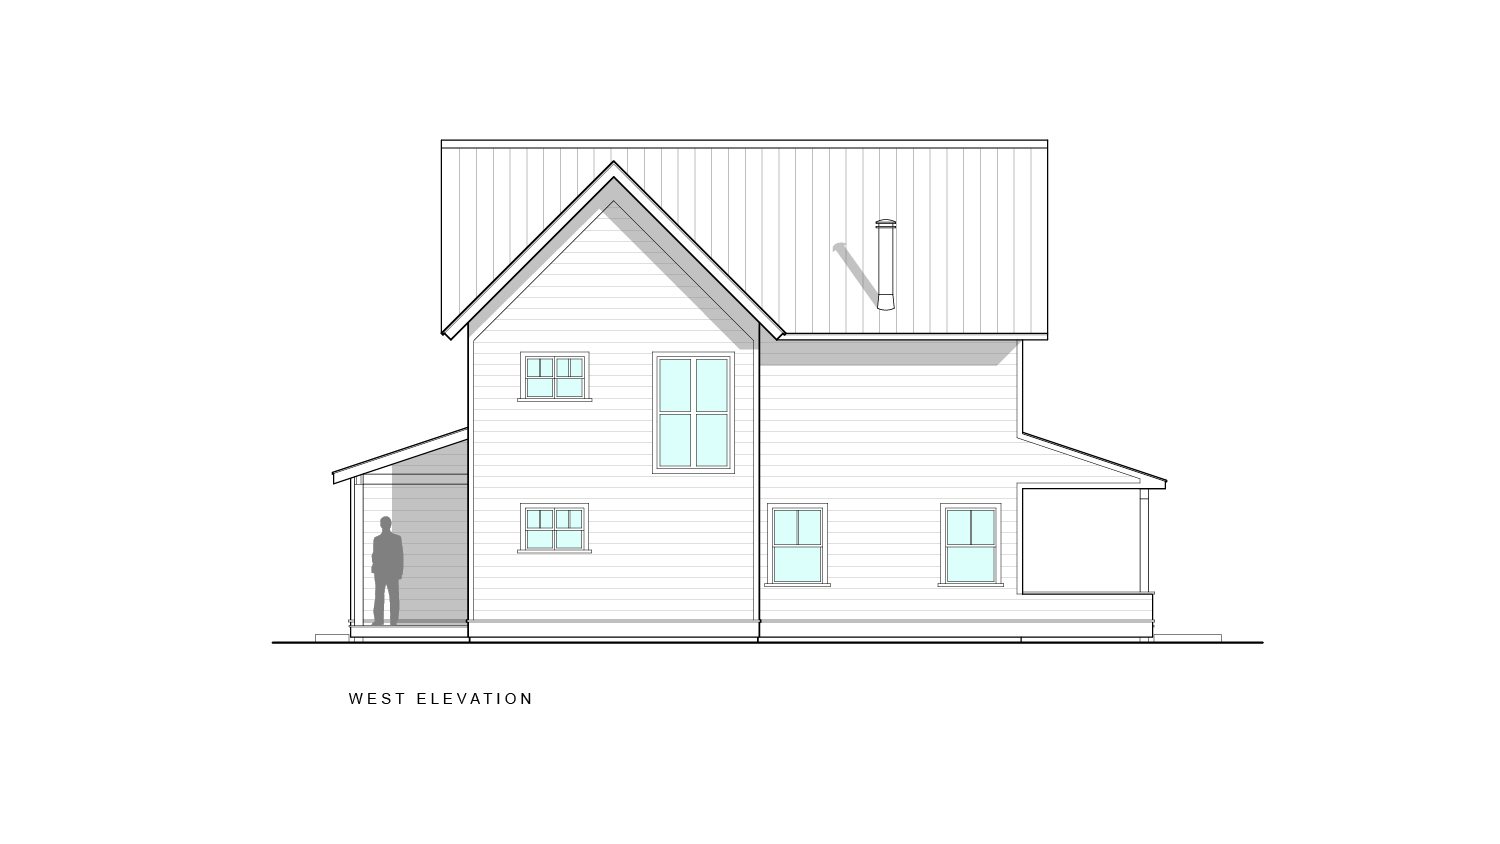 sawkill-ave-west-elevation-